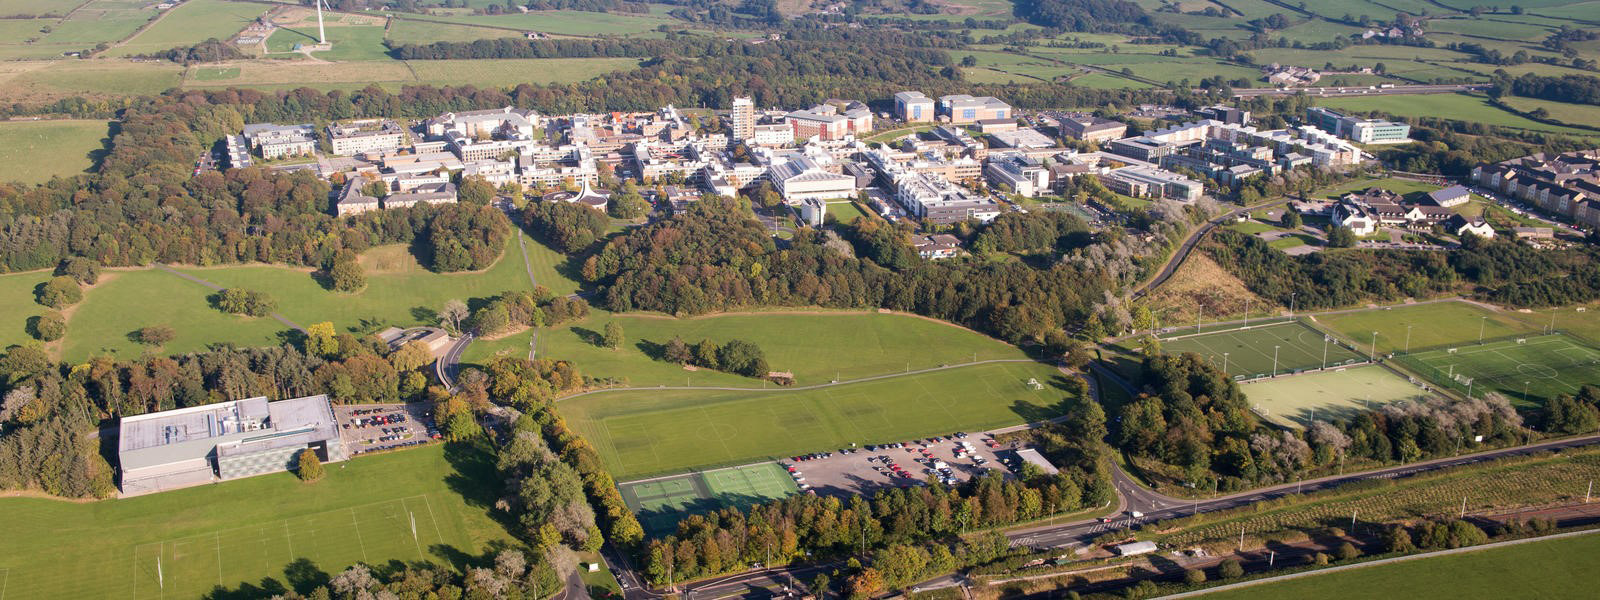 Image of Lancaster University from the sky